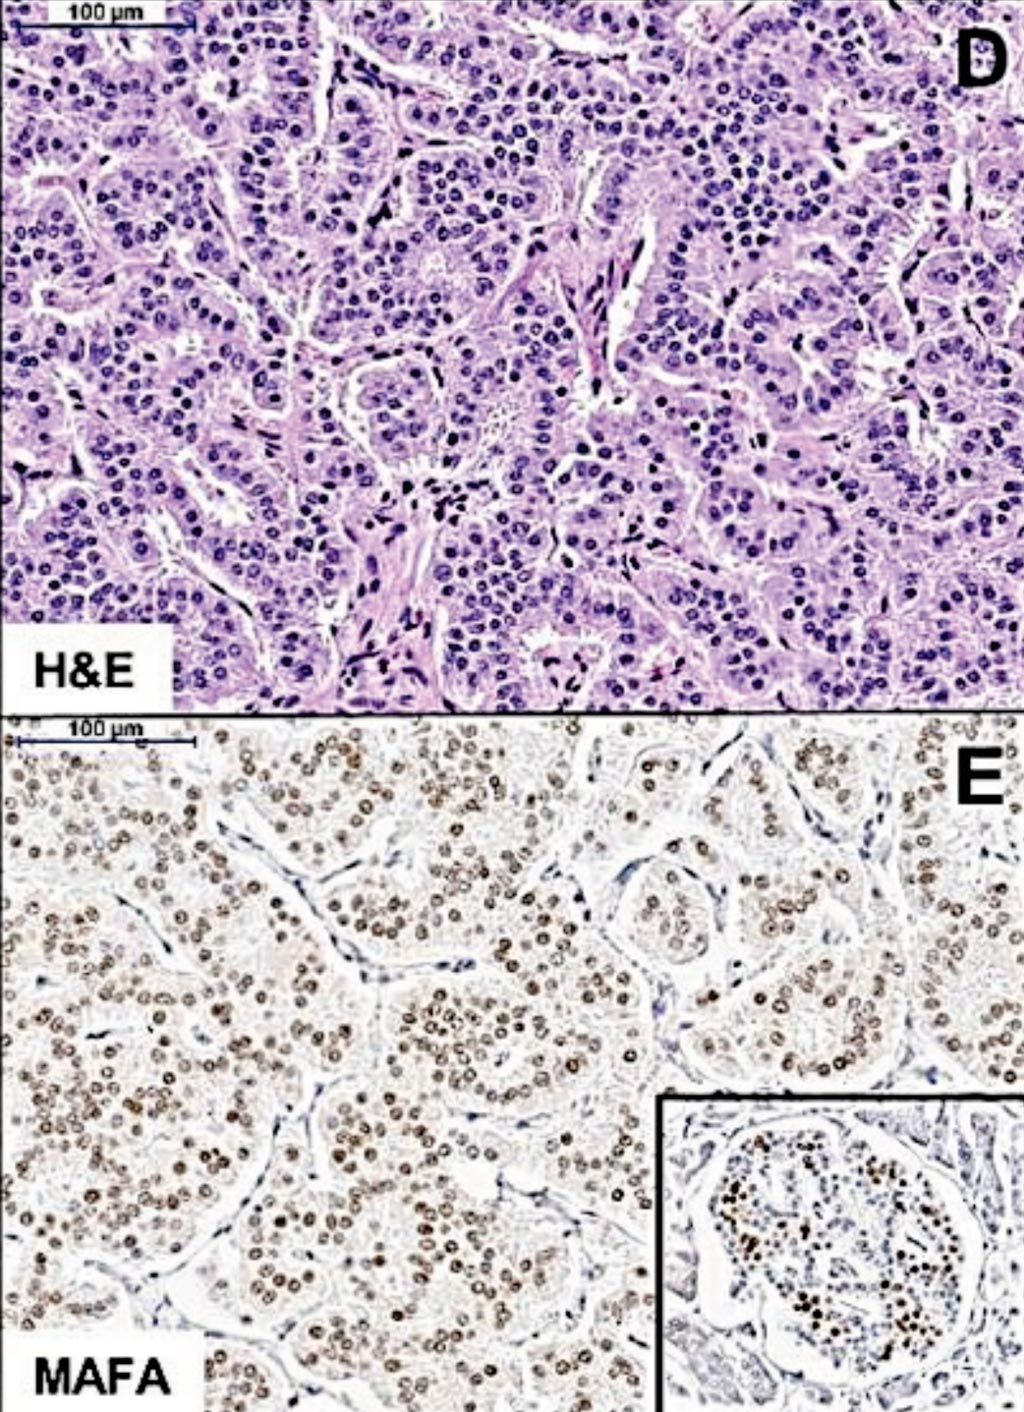 Image: Histopathology: (D) H&E staining showing the trabecular pattern of MAFA mutation-positive insulinomas. (E) Immunostaining shows diffuse MAFA expression in the tumor, at lower levels compared with the neighboring normal islets strongly expressing MAFA (Inset) (Photo courtesy of the Queen Mary University of London).